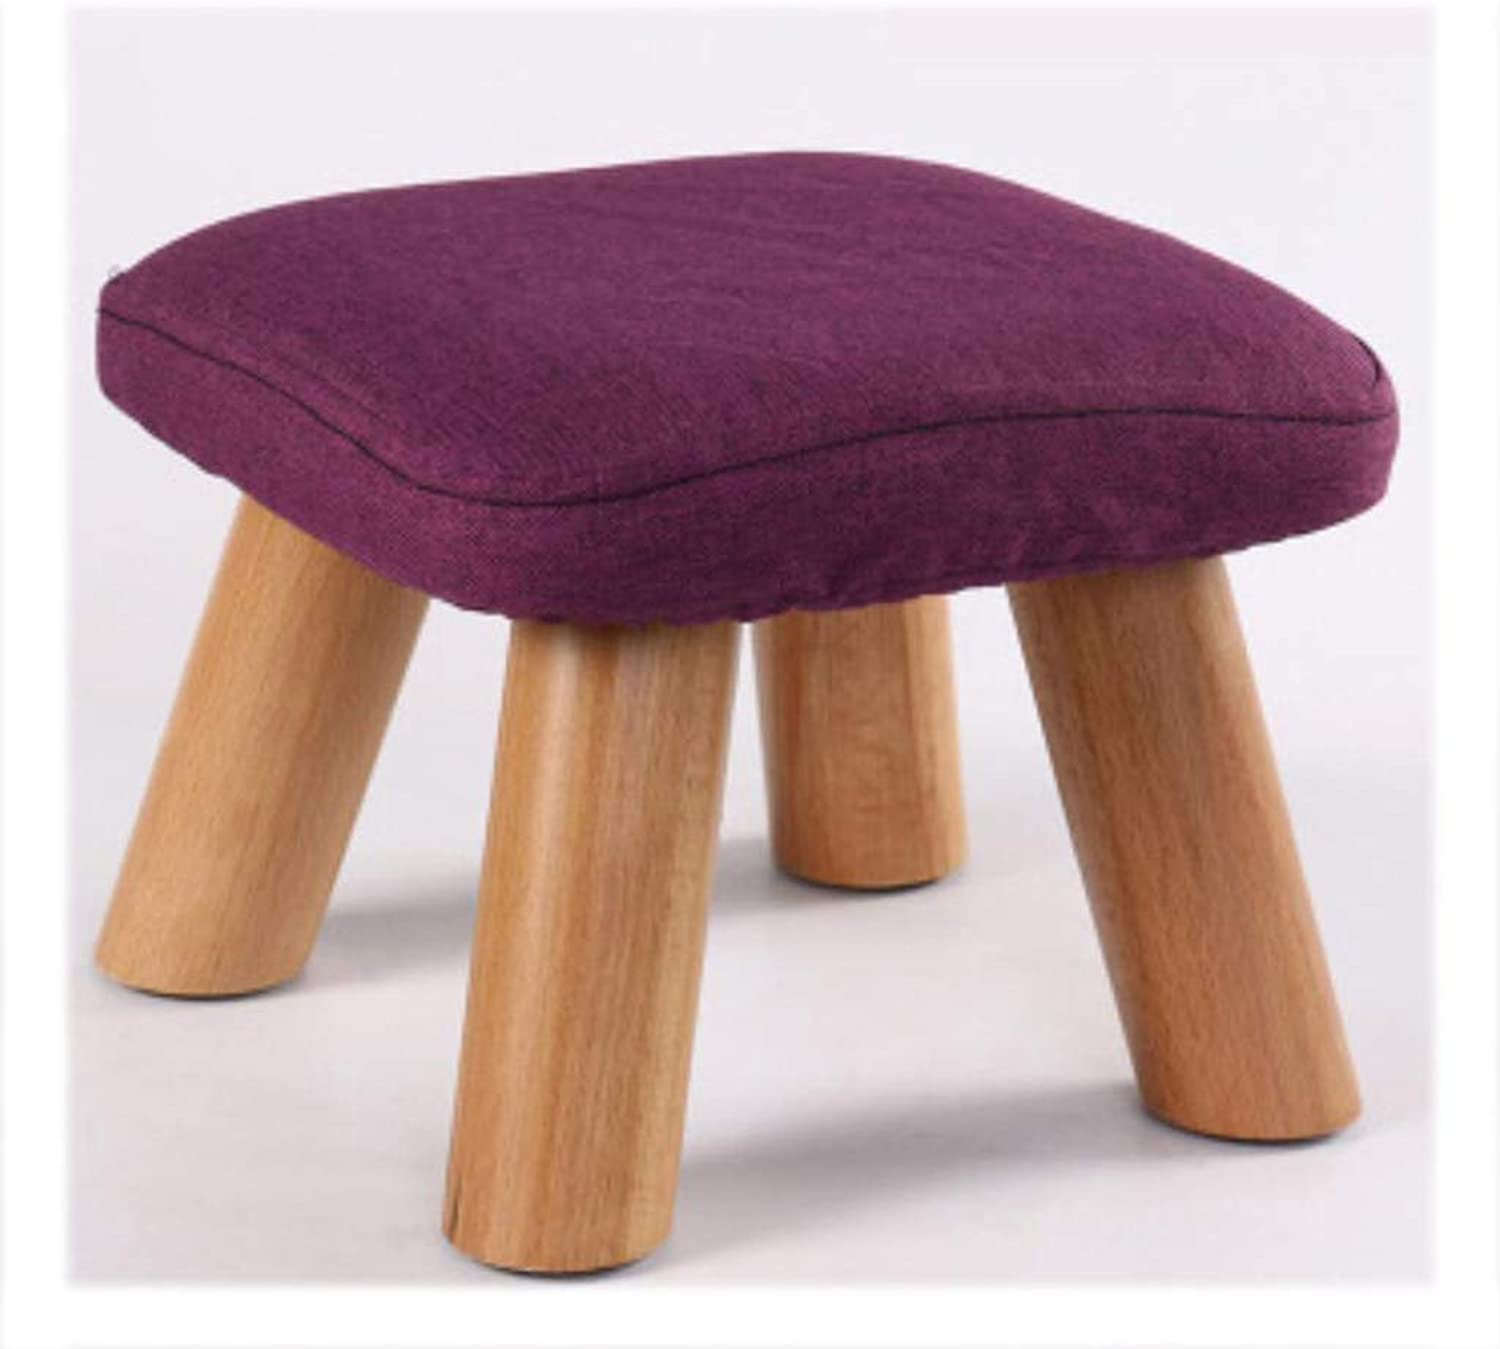 WOOD Mushroom Stool Solid wood shoes Stool Classic Low Stool Living Room Coffee Table Stool Wooden Bench (color   RED)